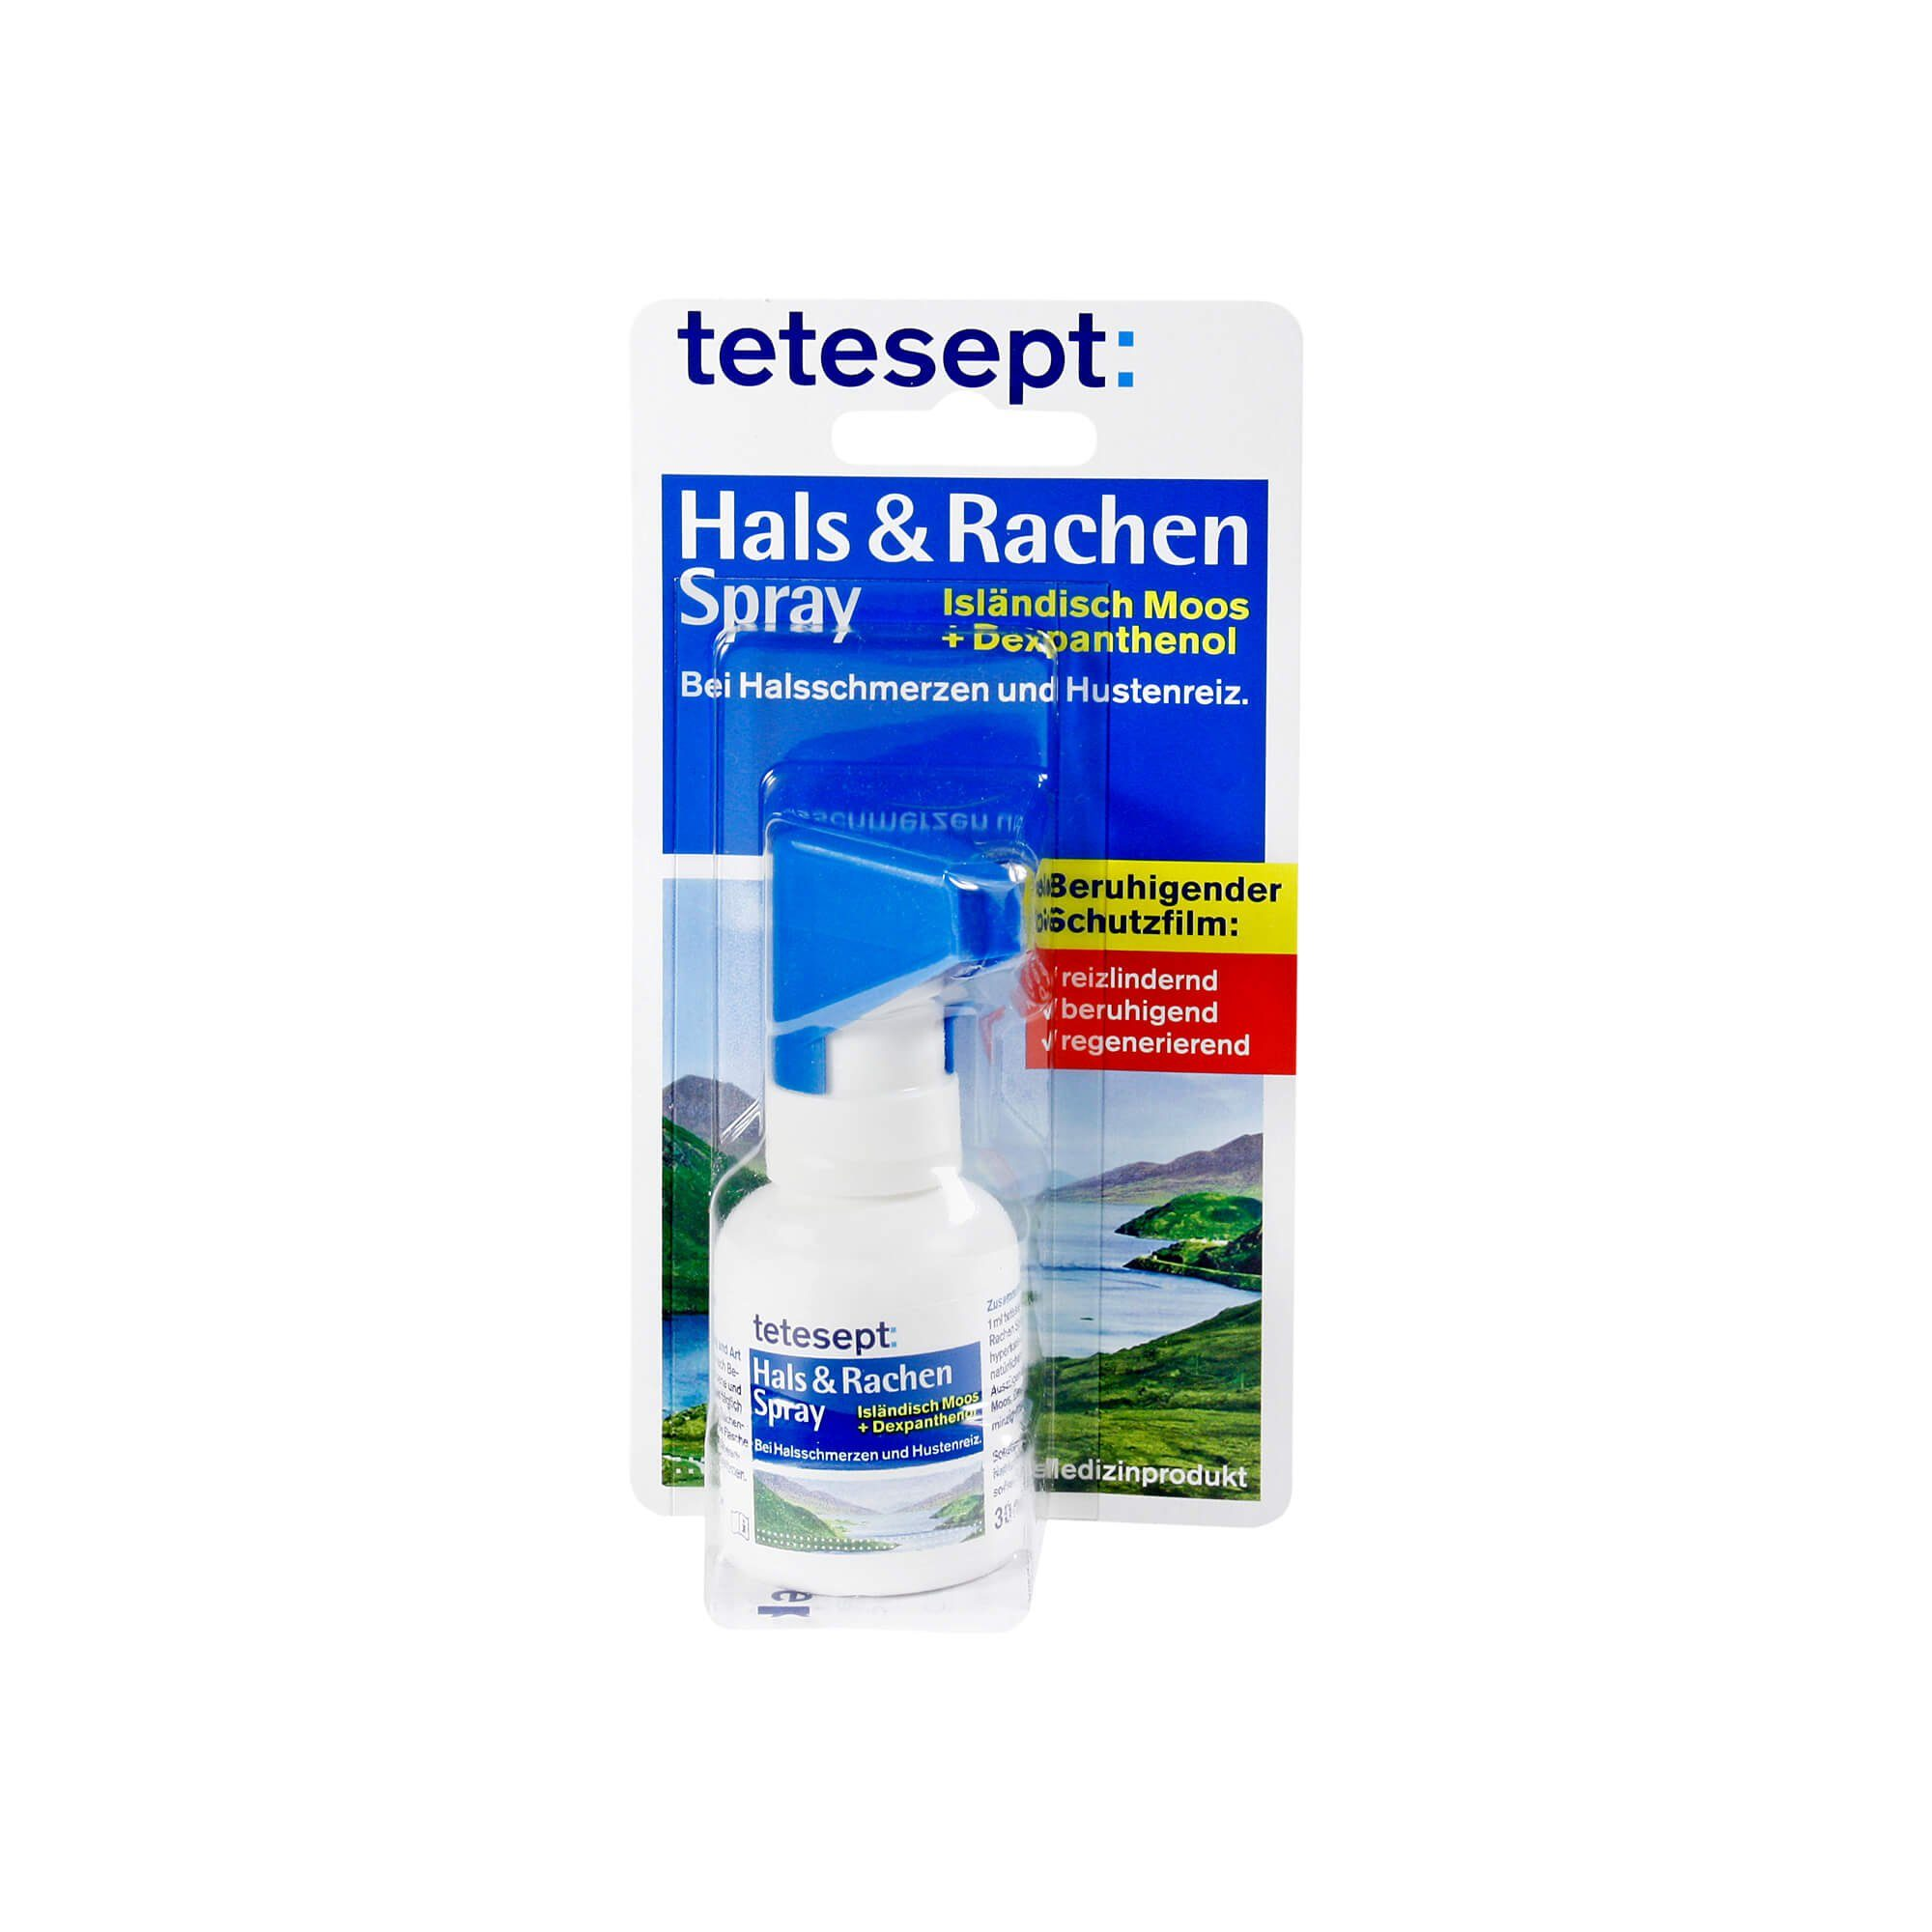 Tetesept Hals + Rachen Spray, 30 ml